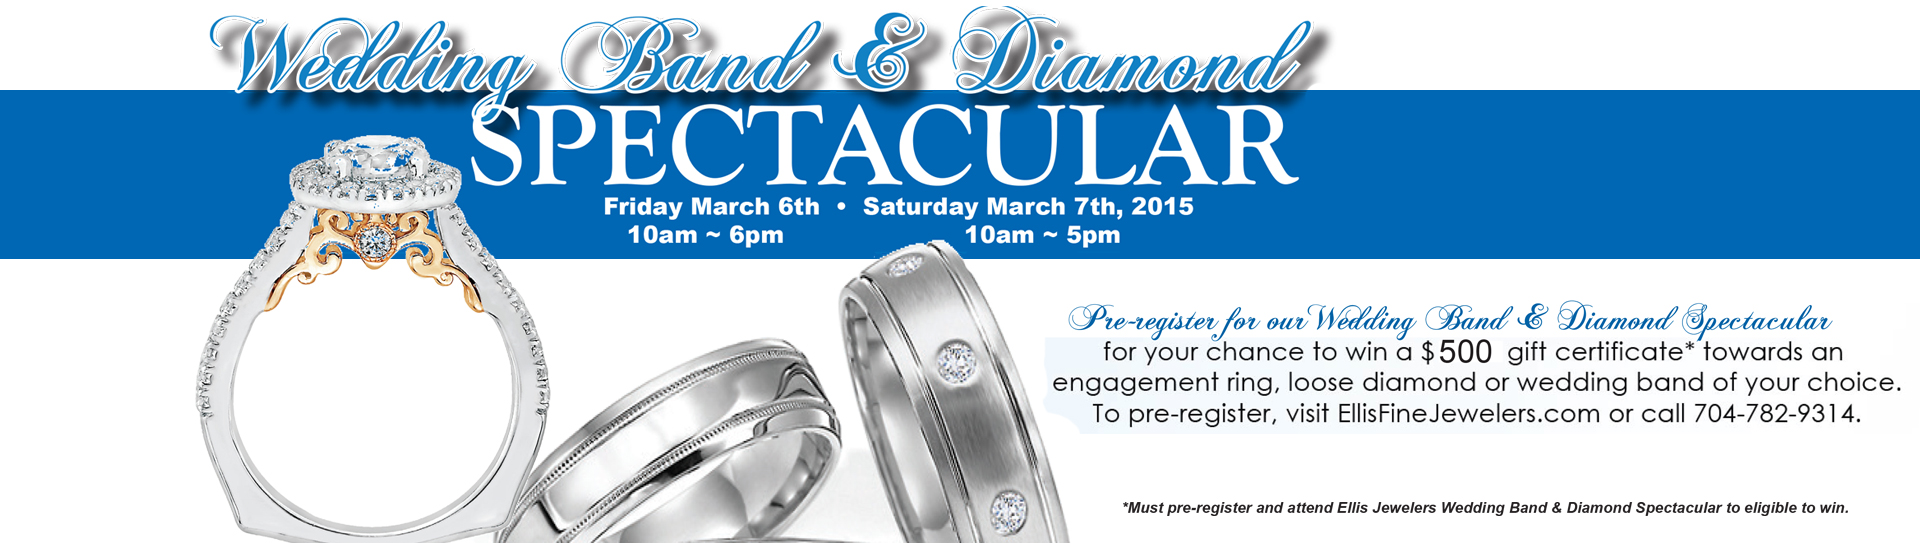 Wedding Band & Diamond Spectacular